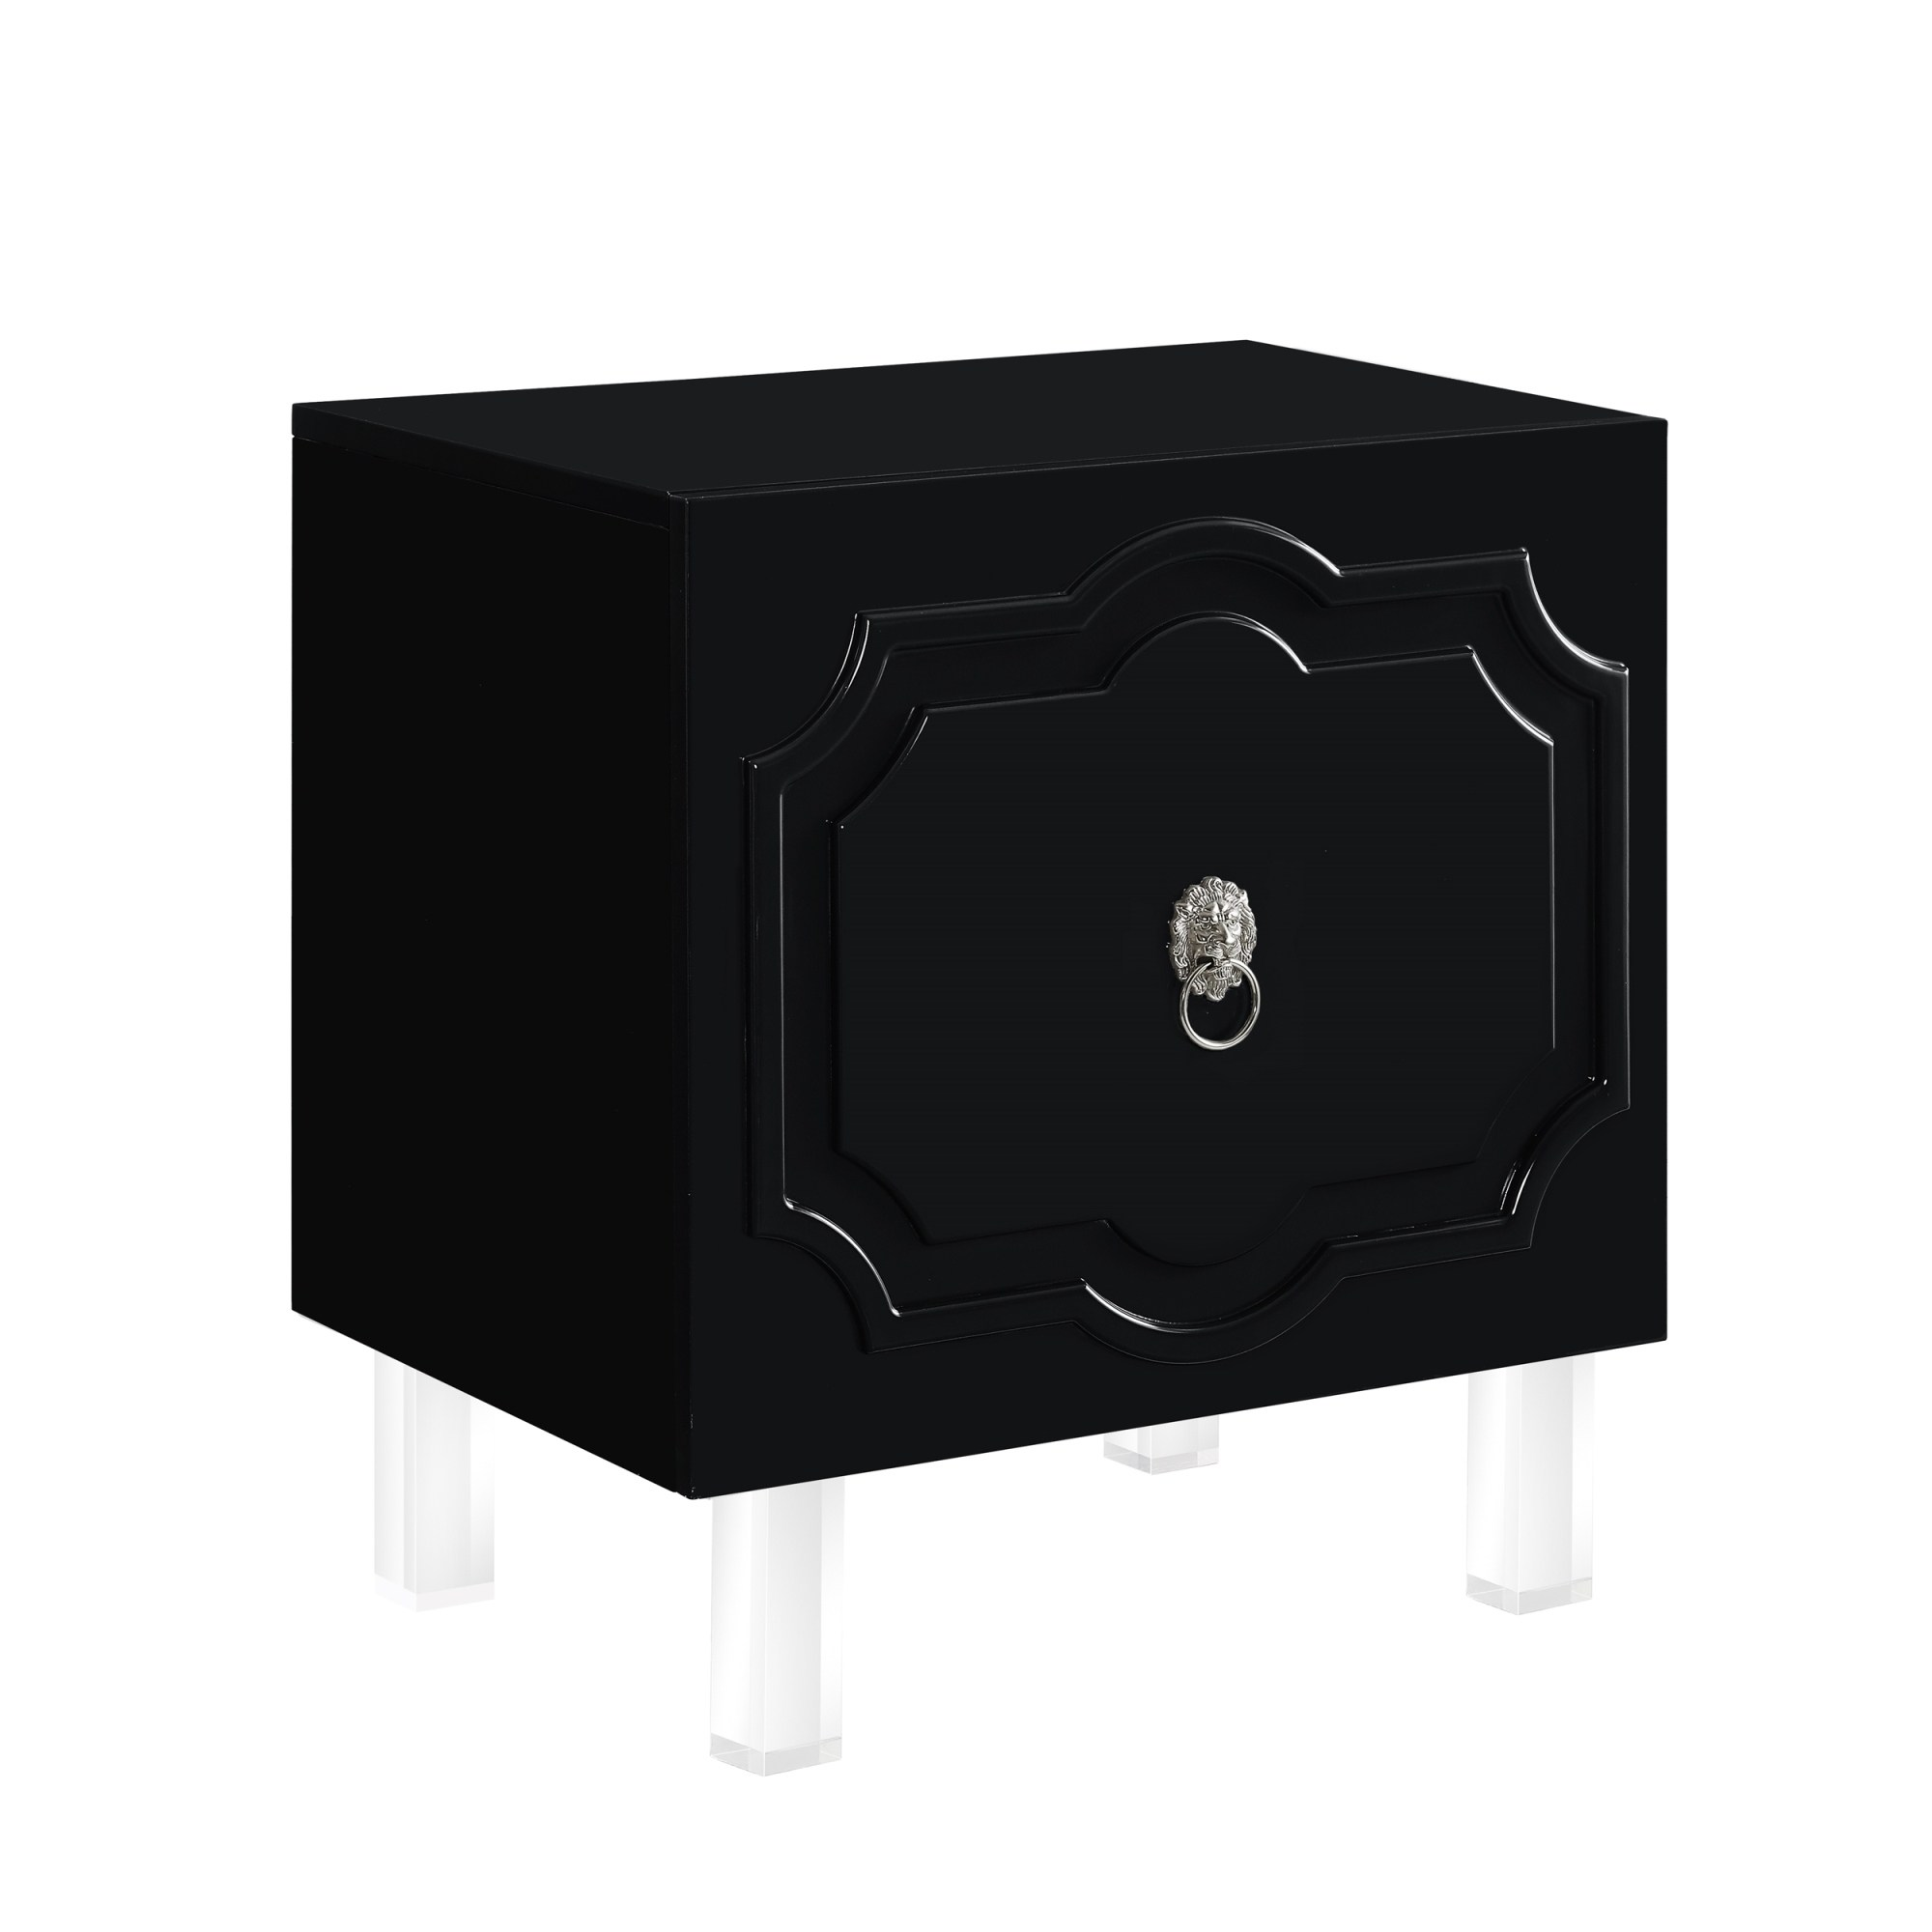 gobi wood lacquer chrome side table accent nightstand mdf black free shipping today beach themed furniture replica retro bedroom dressers iron patio beverage cooler yellow console